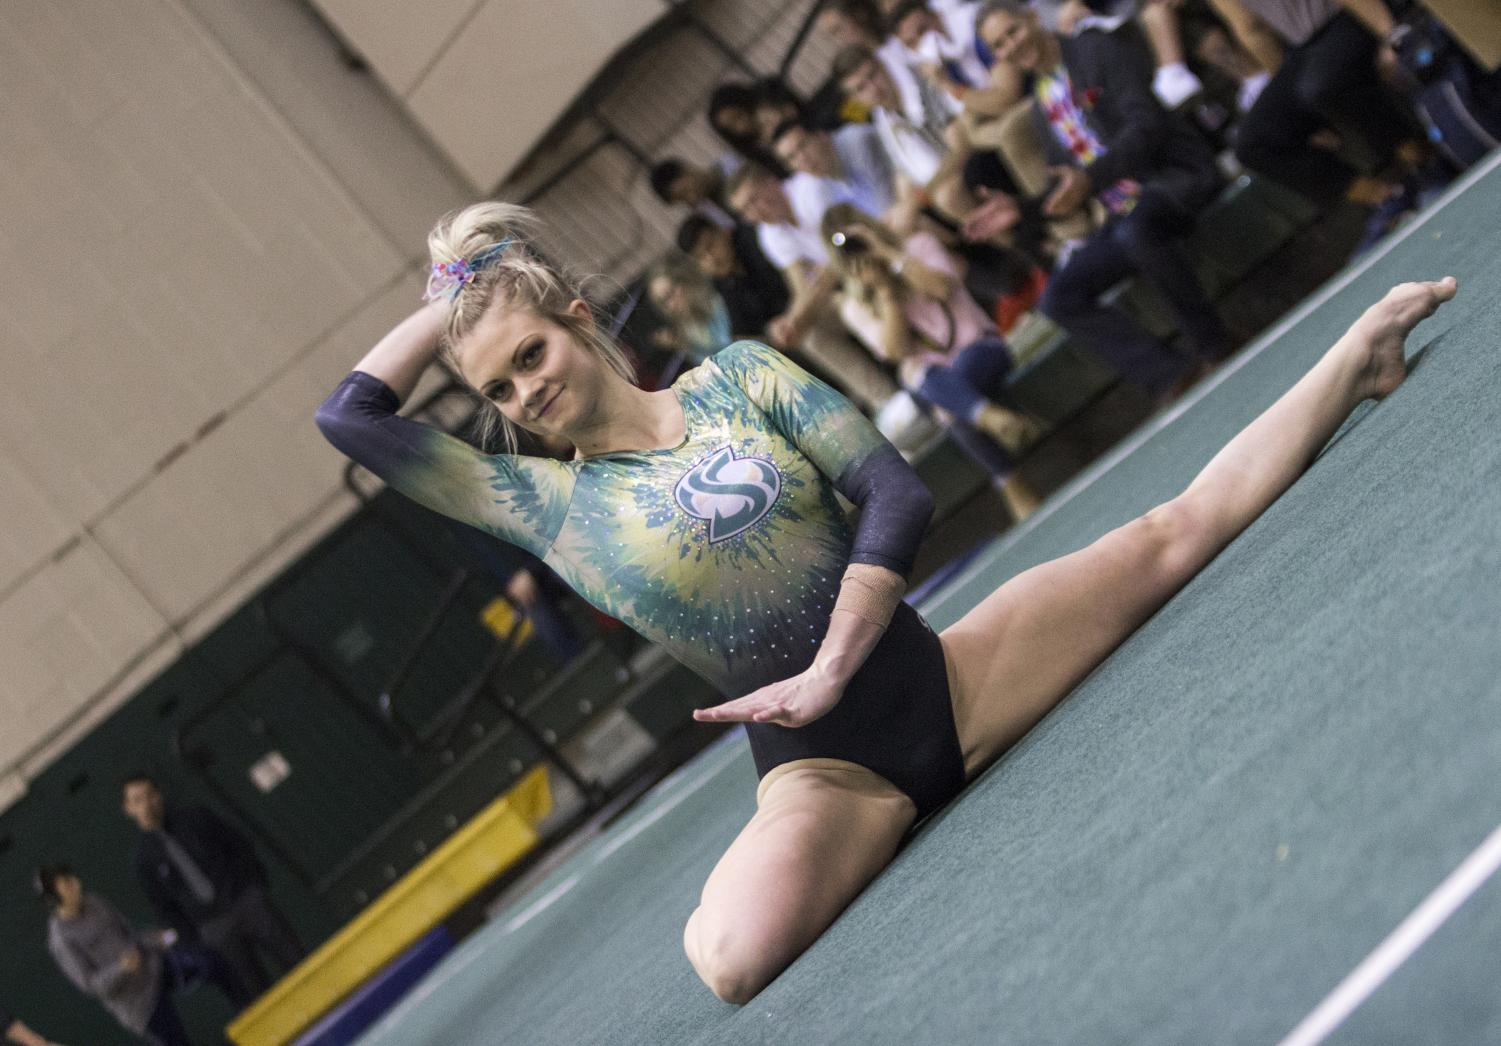 Sacramento State junior gymnast Jackie Sampson performs her floor routine at the Nest on Fri., March 9, 2018. Sampson set a career high of 9.825 in the event and the Hornets scored a 195.175 as a team.